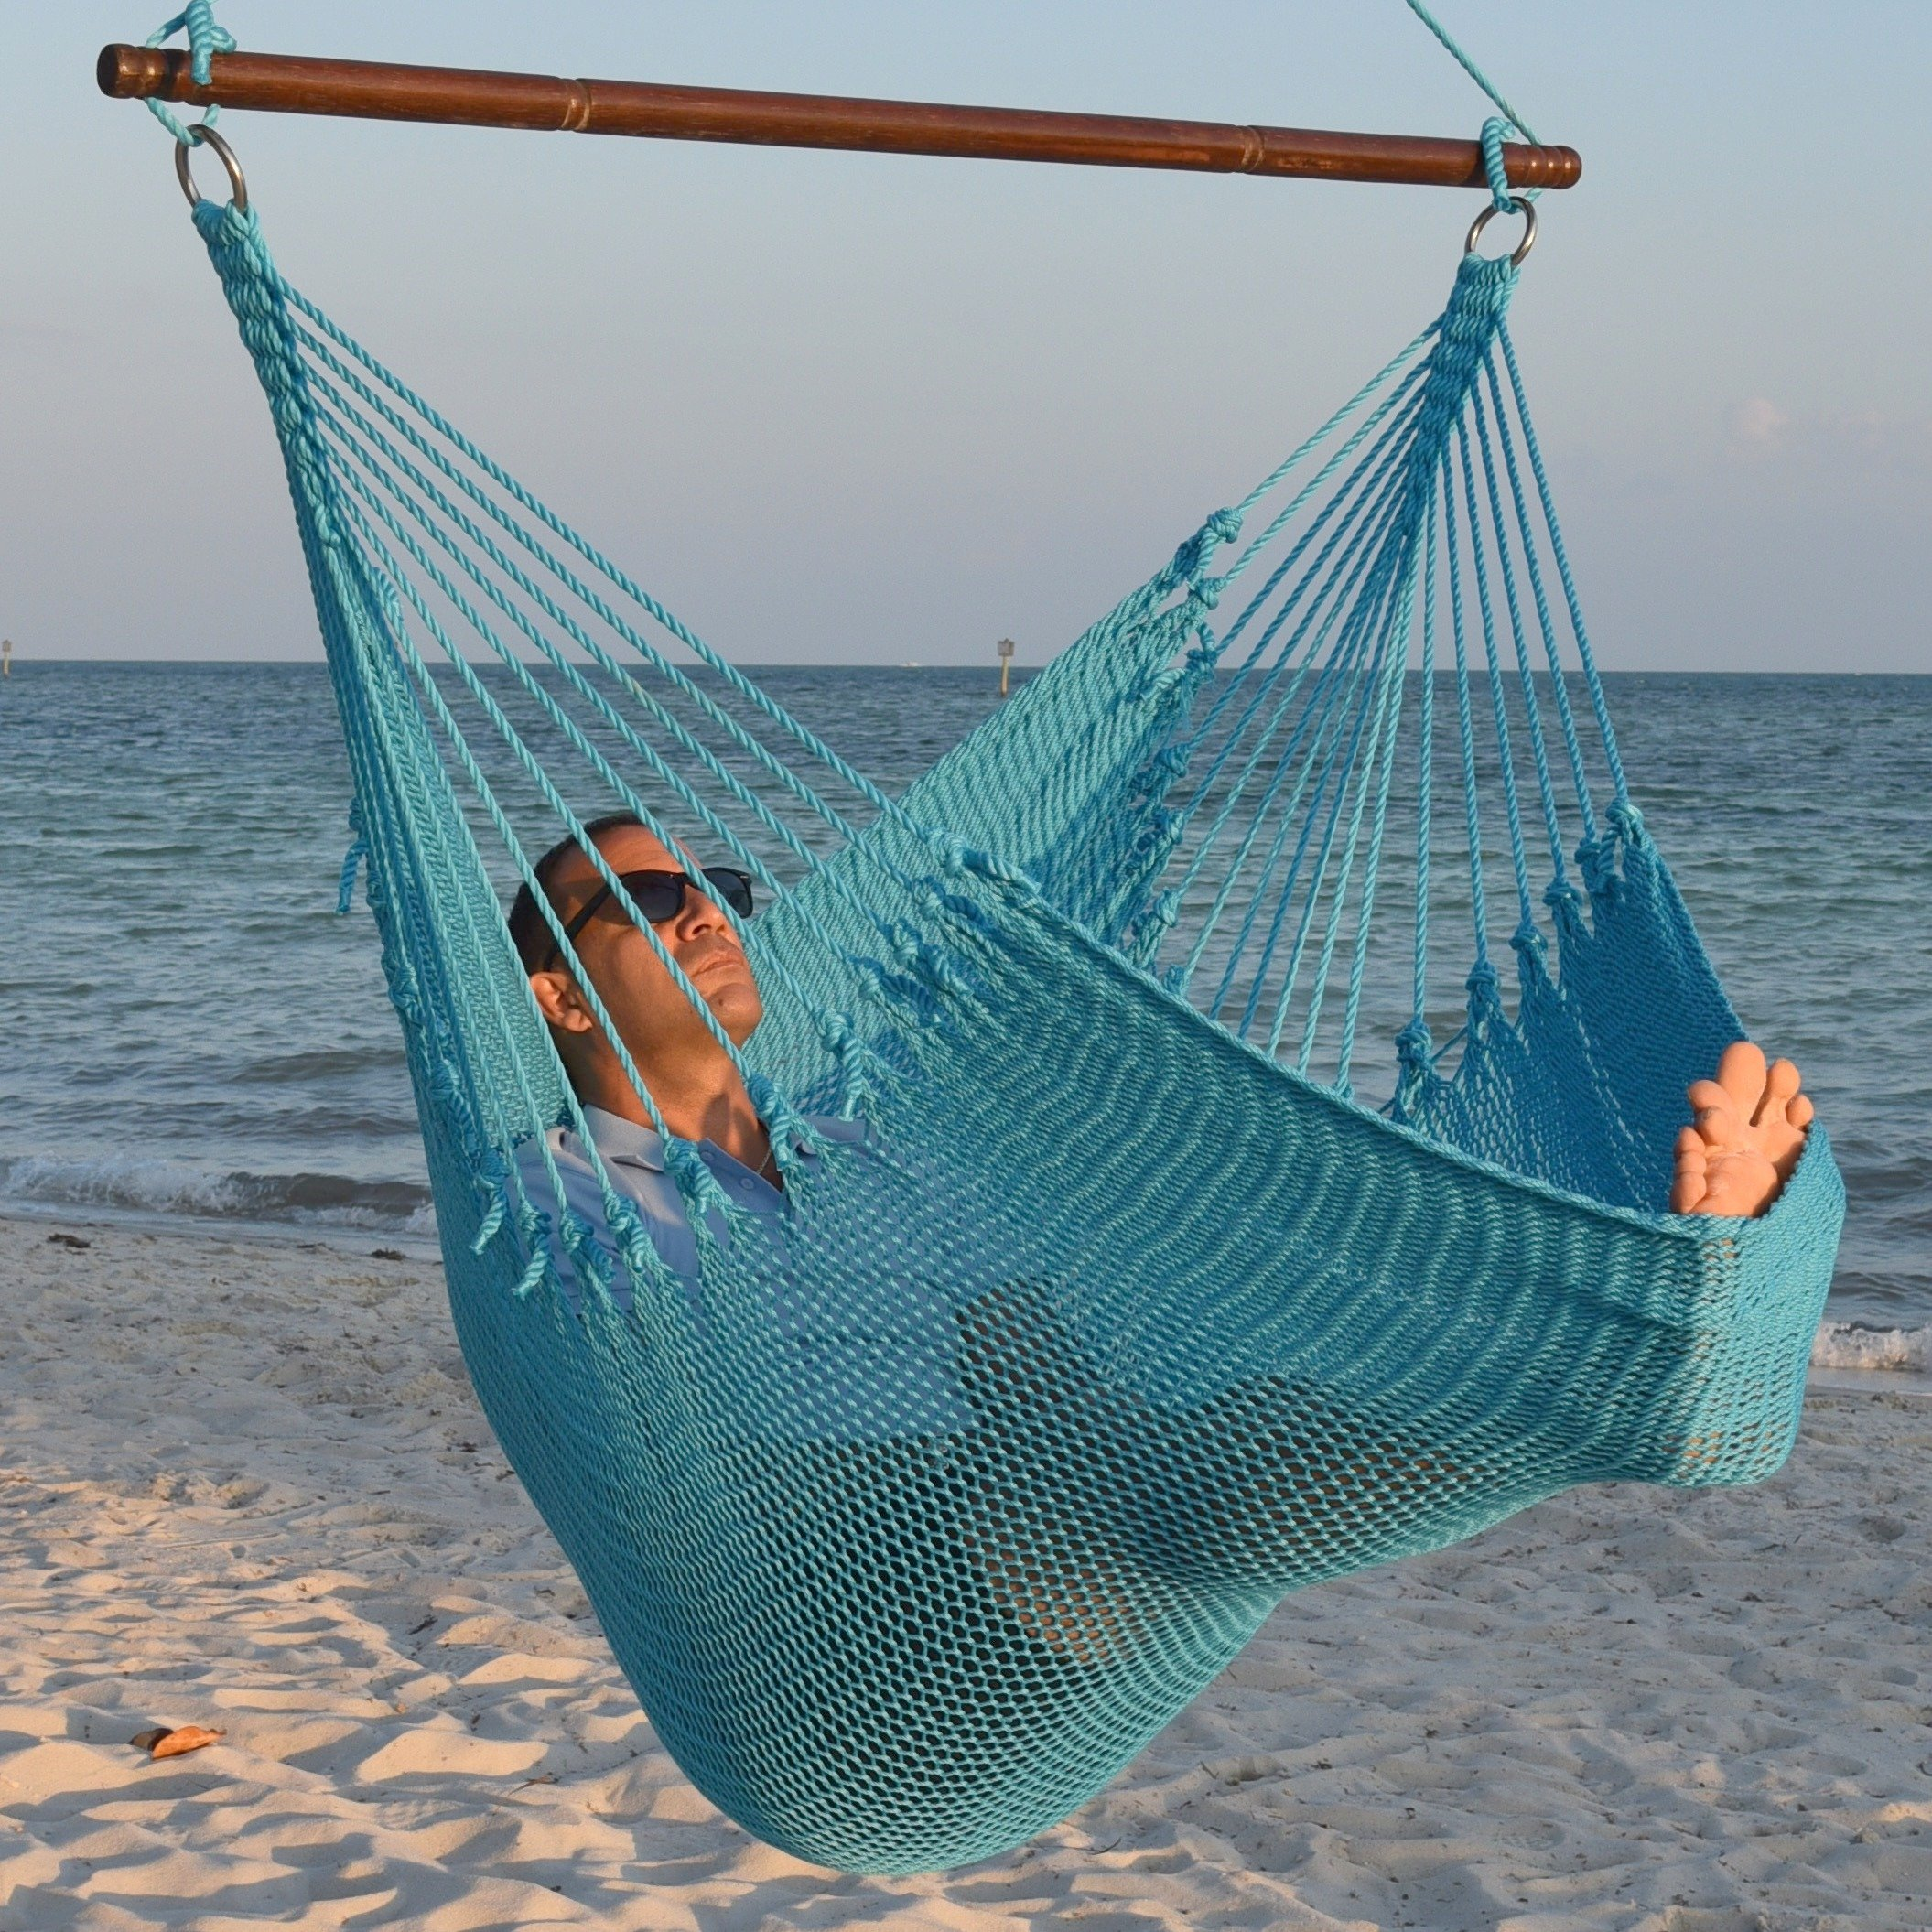 Caribbean Hammocks Jumbo Chair with Footrest - 55 inch - Soft-Spun Polyester - Light Blue